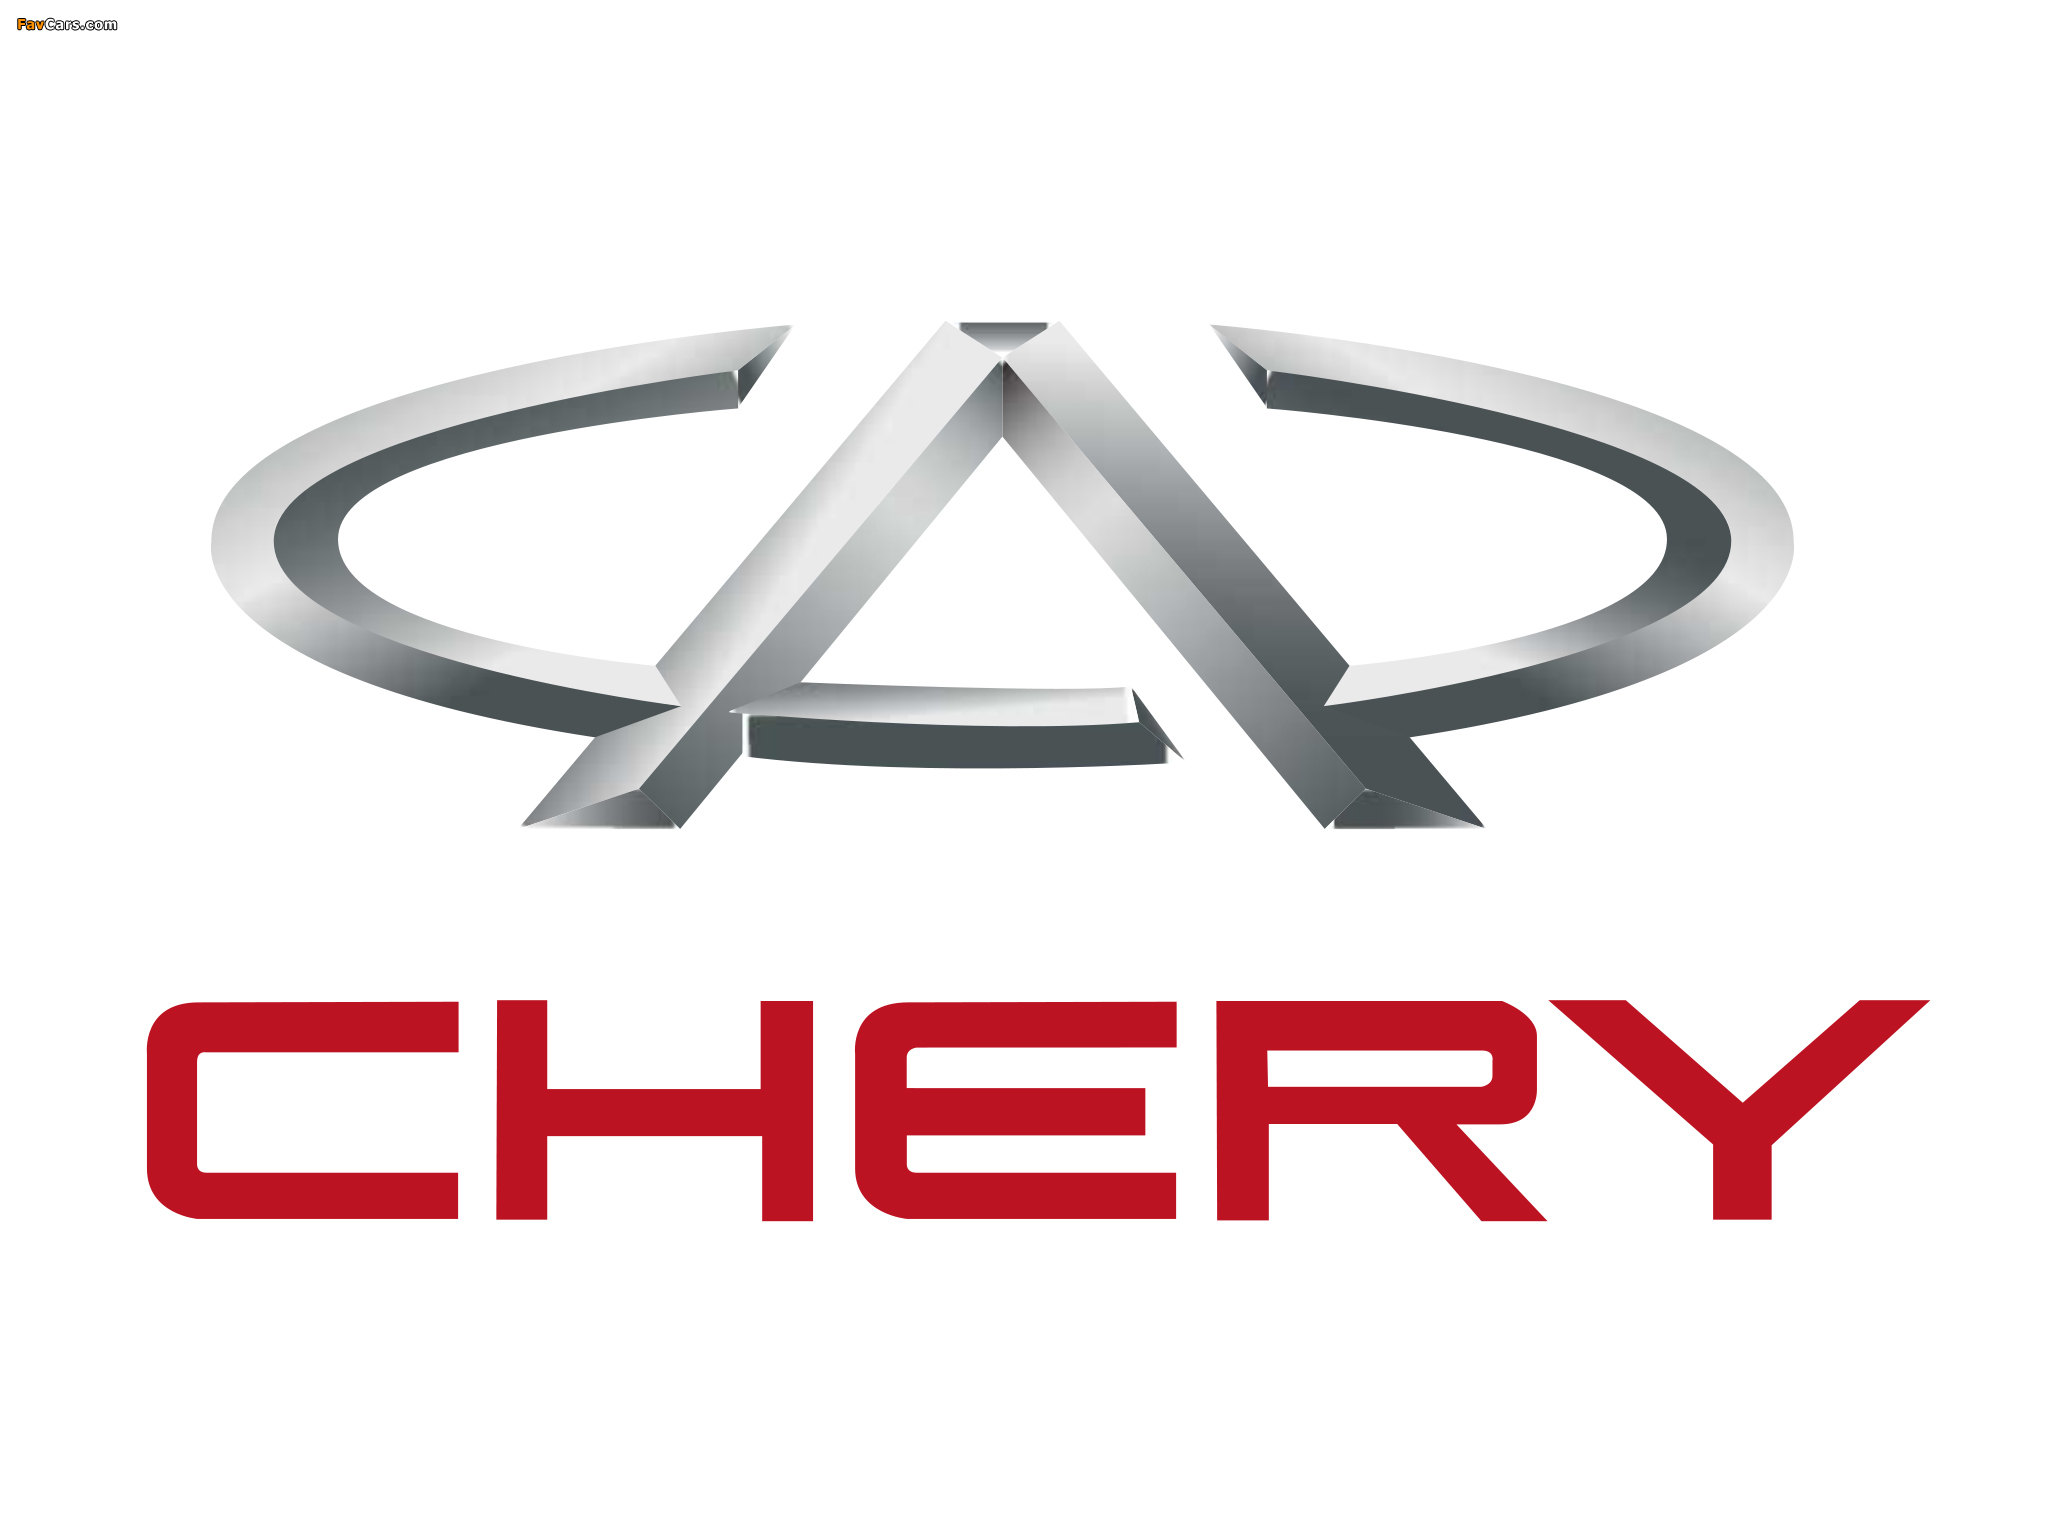 Chery images (2048 x 1536)